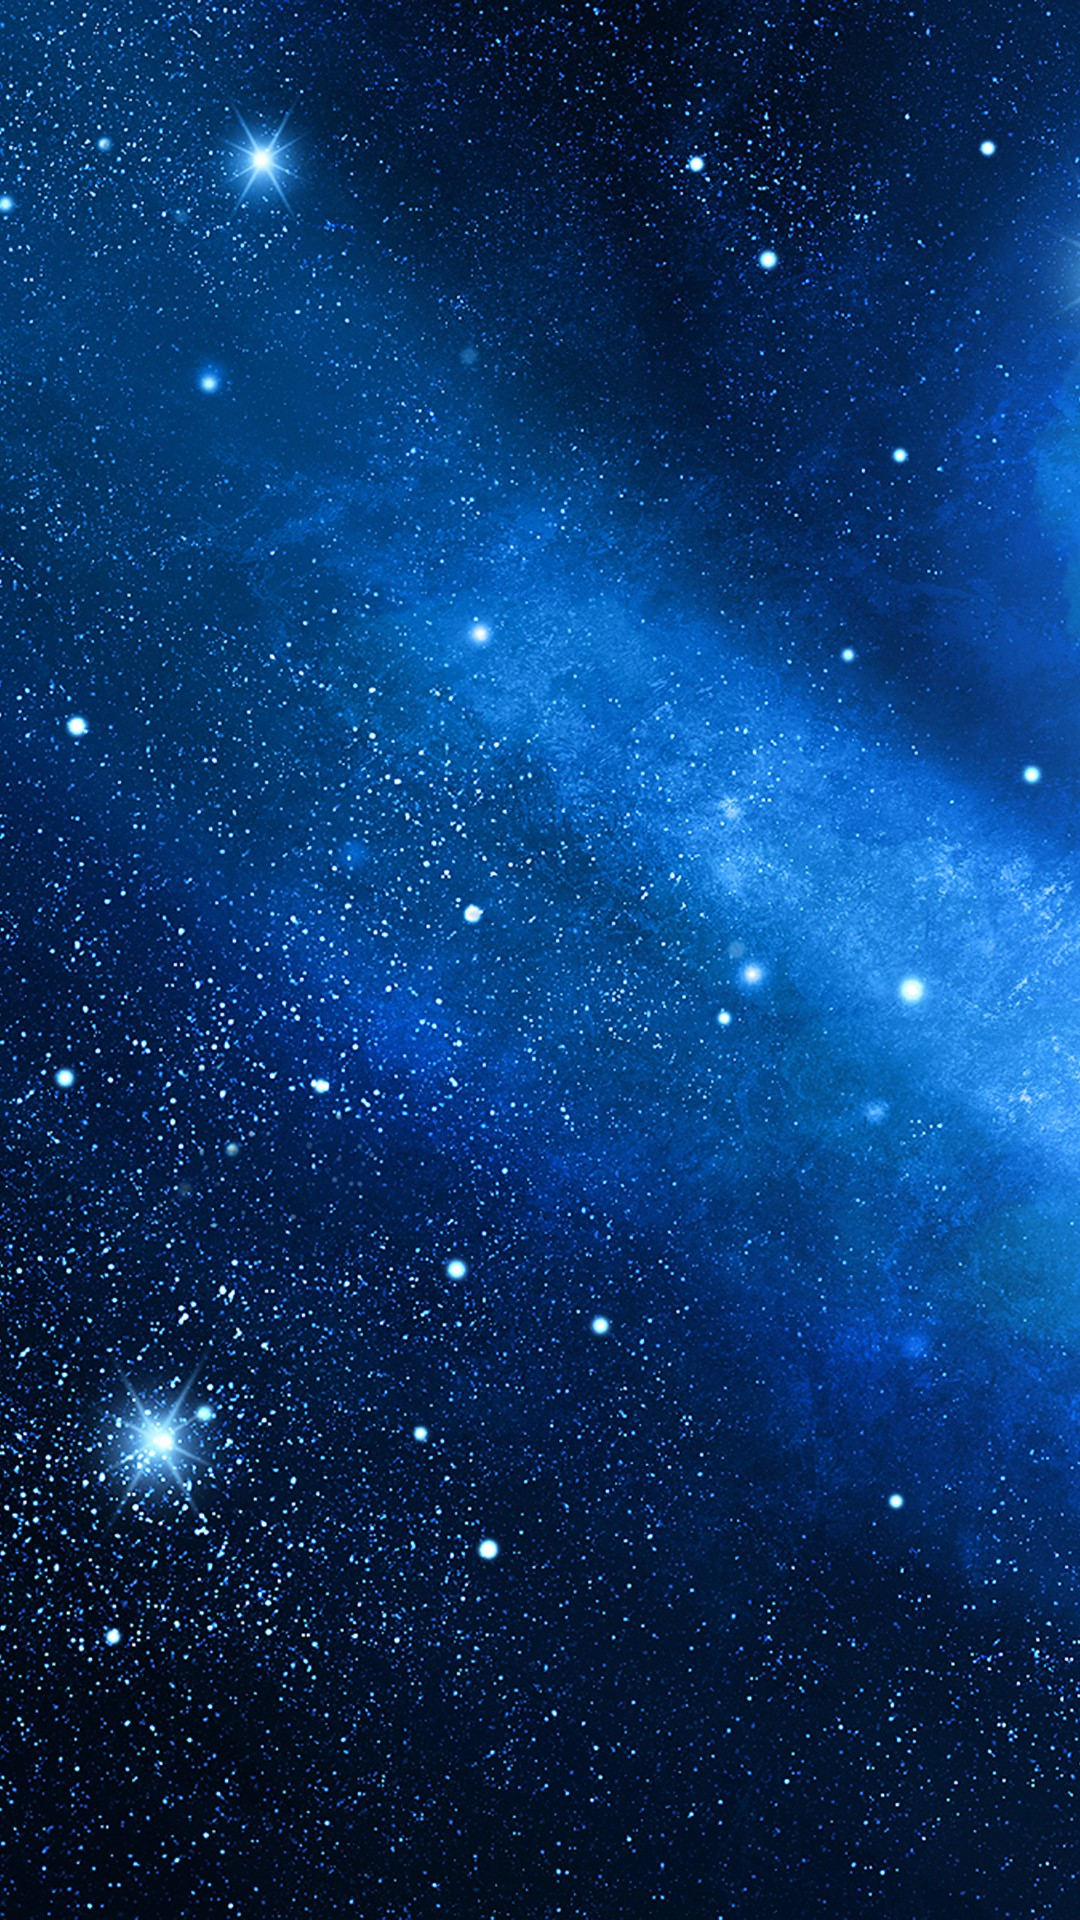 Blue Galaxy wallpaper ·① Download free amazing full HD ...